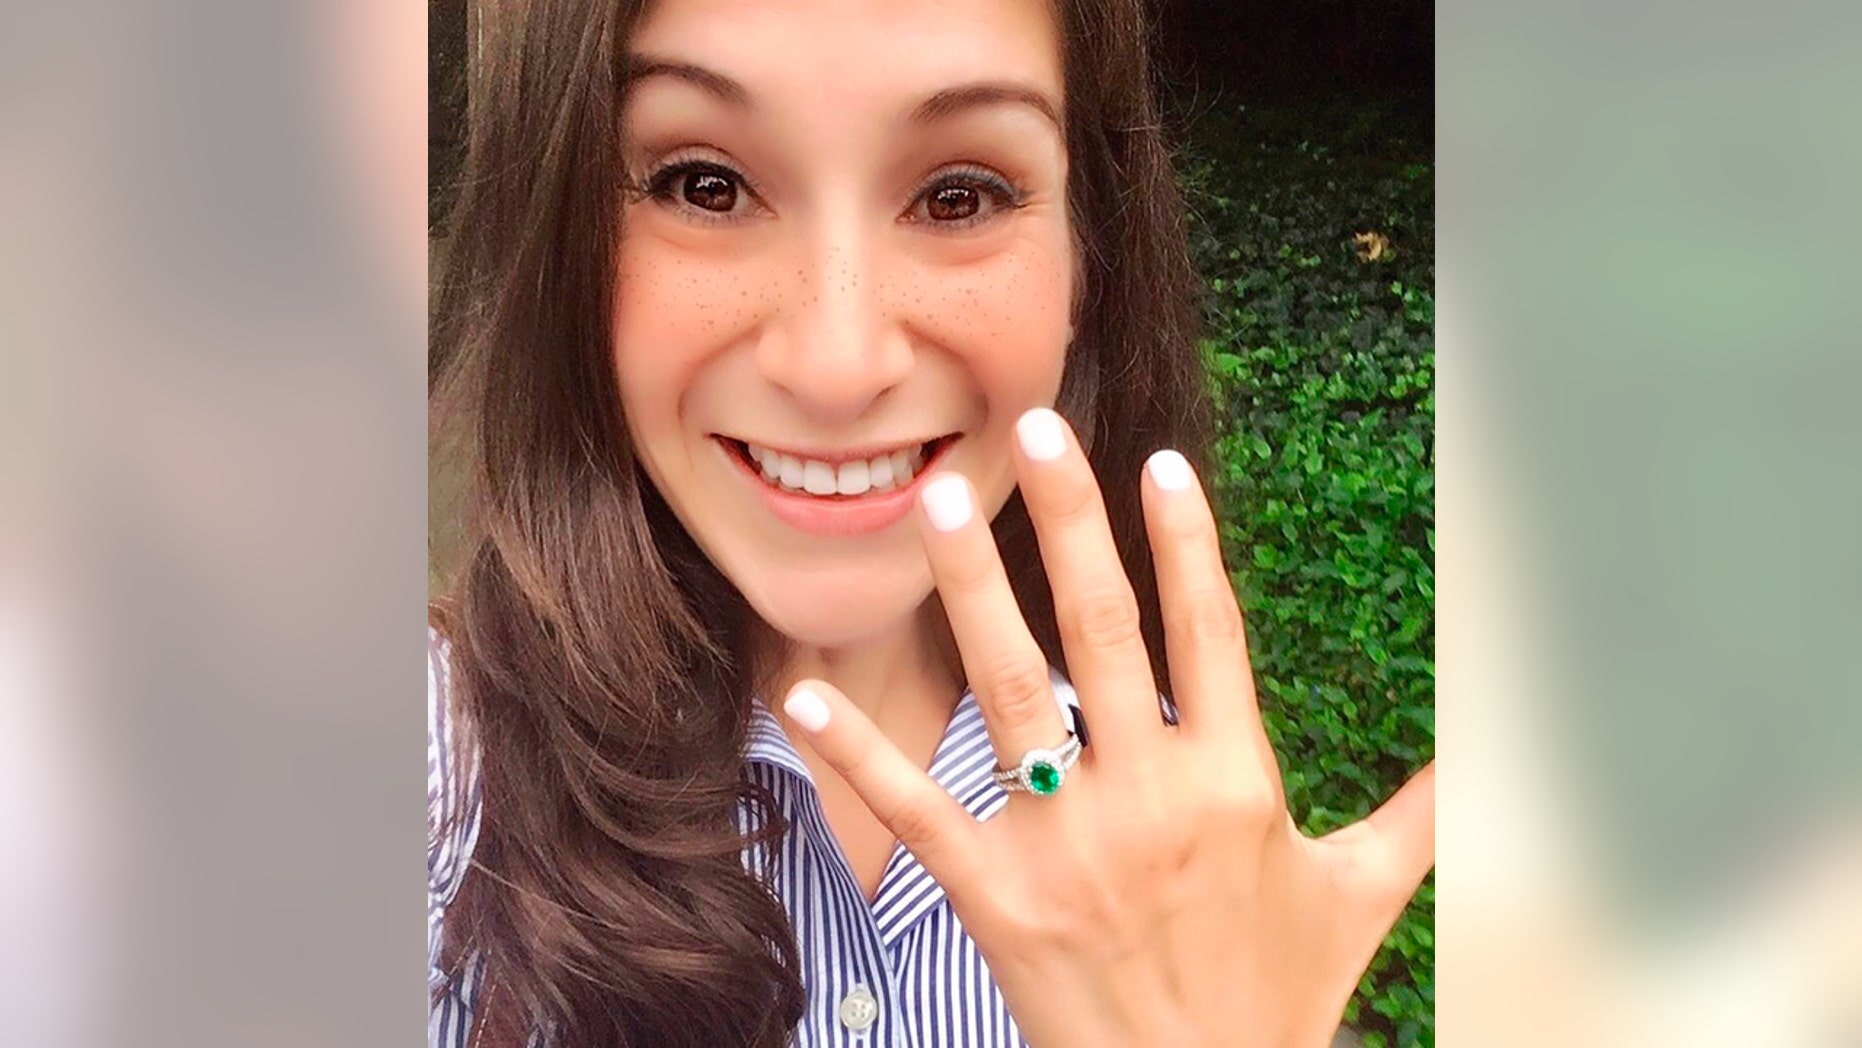 A photo of Wendy Karina Martinez. Police say Martinez, an avid runner who was killed in a residential neighborhood in the nation's capital after recently getting engaged, was likely a random target. Police say on Sept. 20, that a suspect has been arrested in the Tuesday stabbing death of Martinez near Logan Circle in Washington.